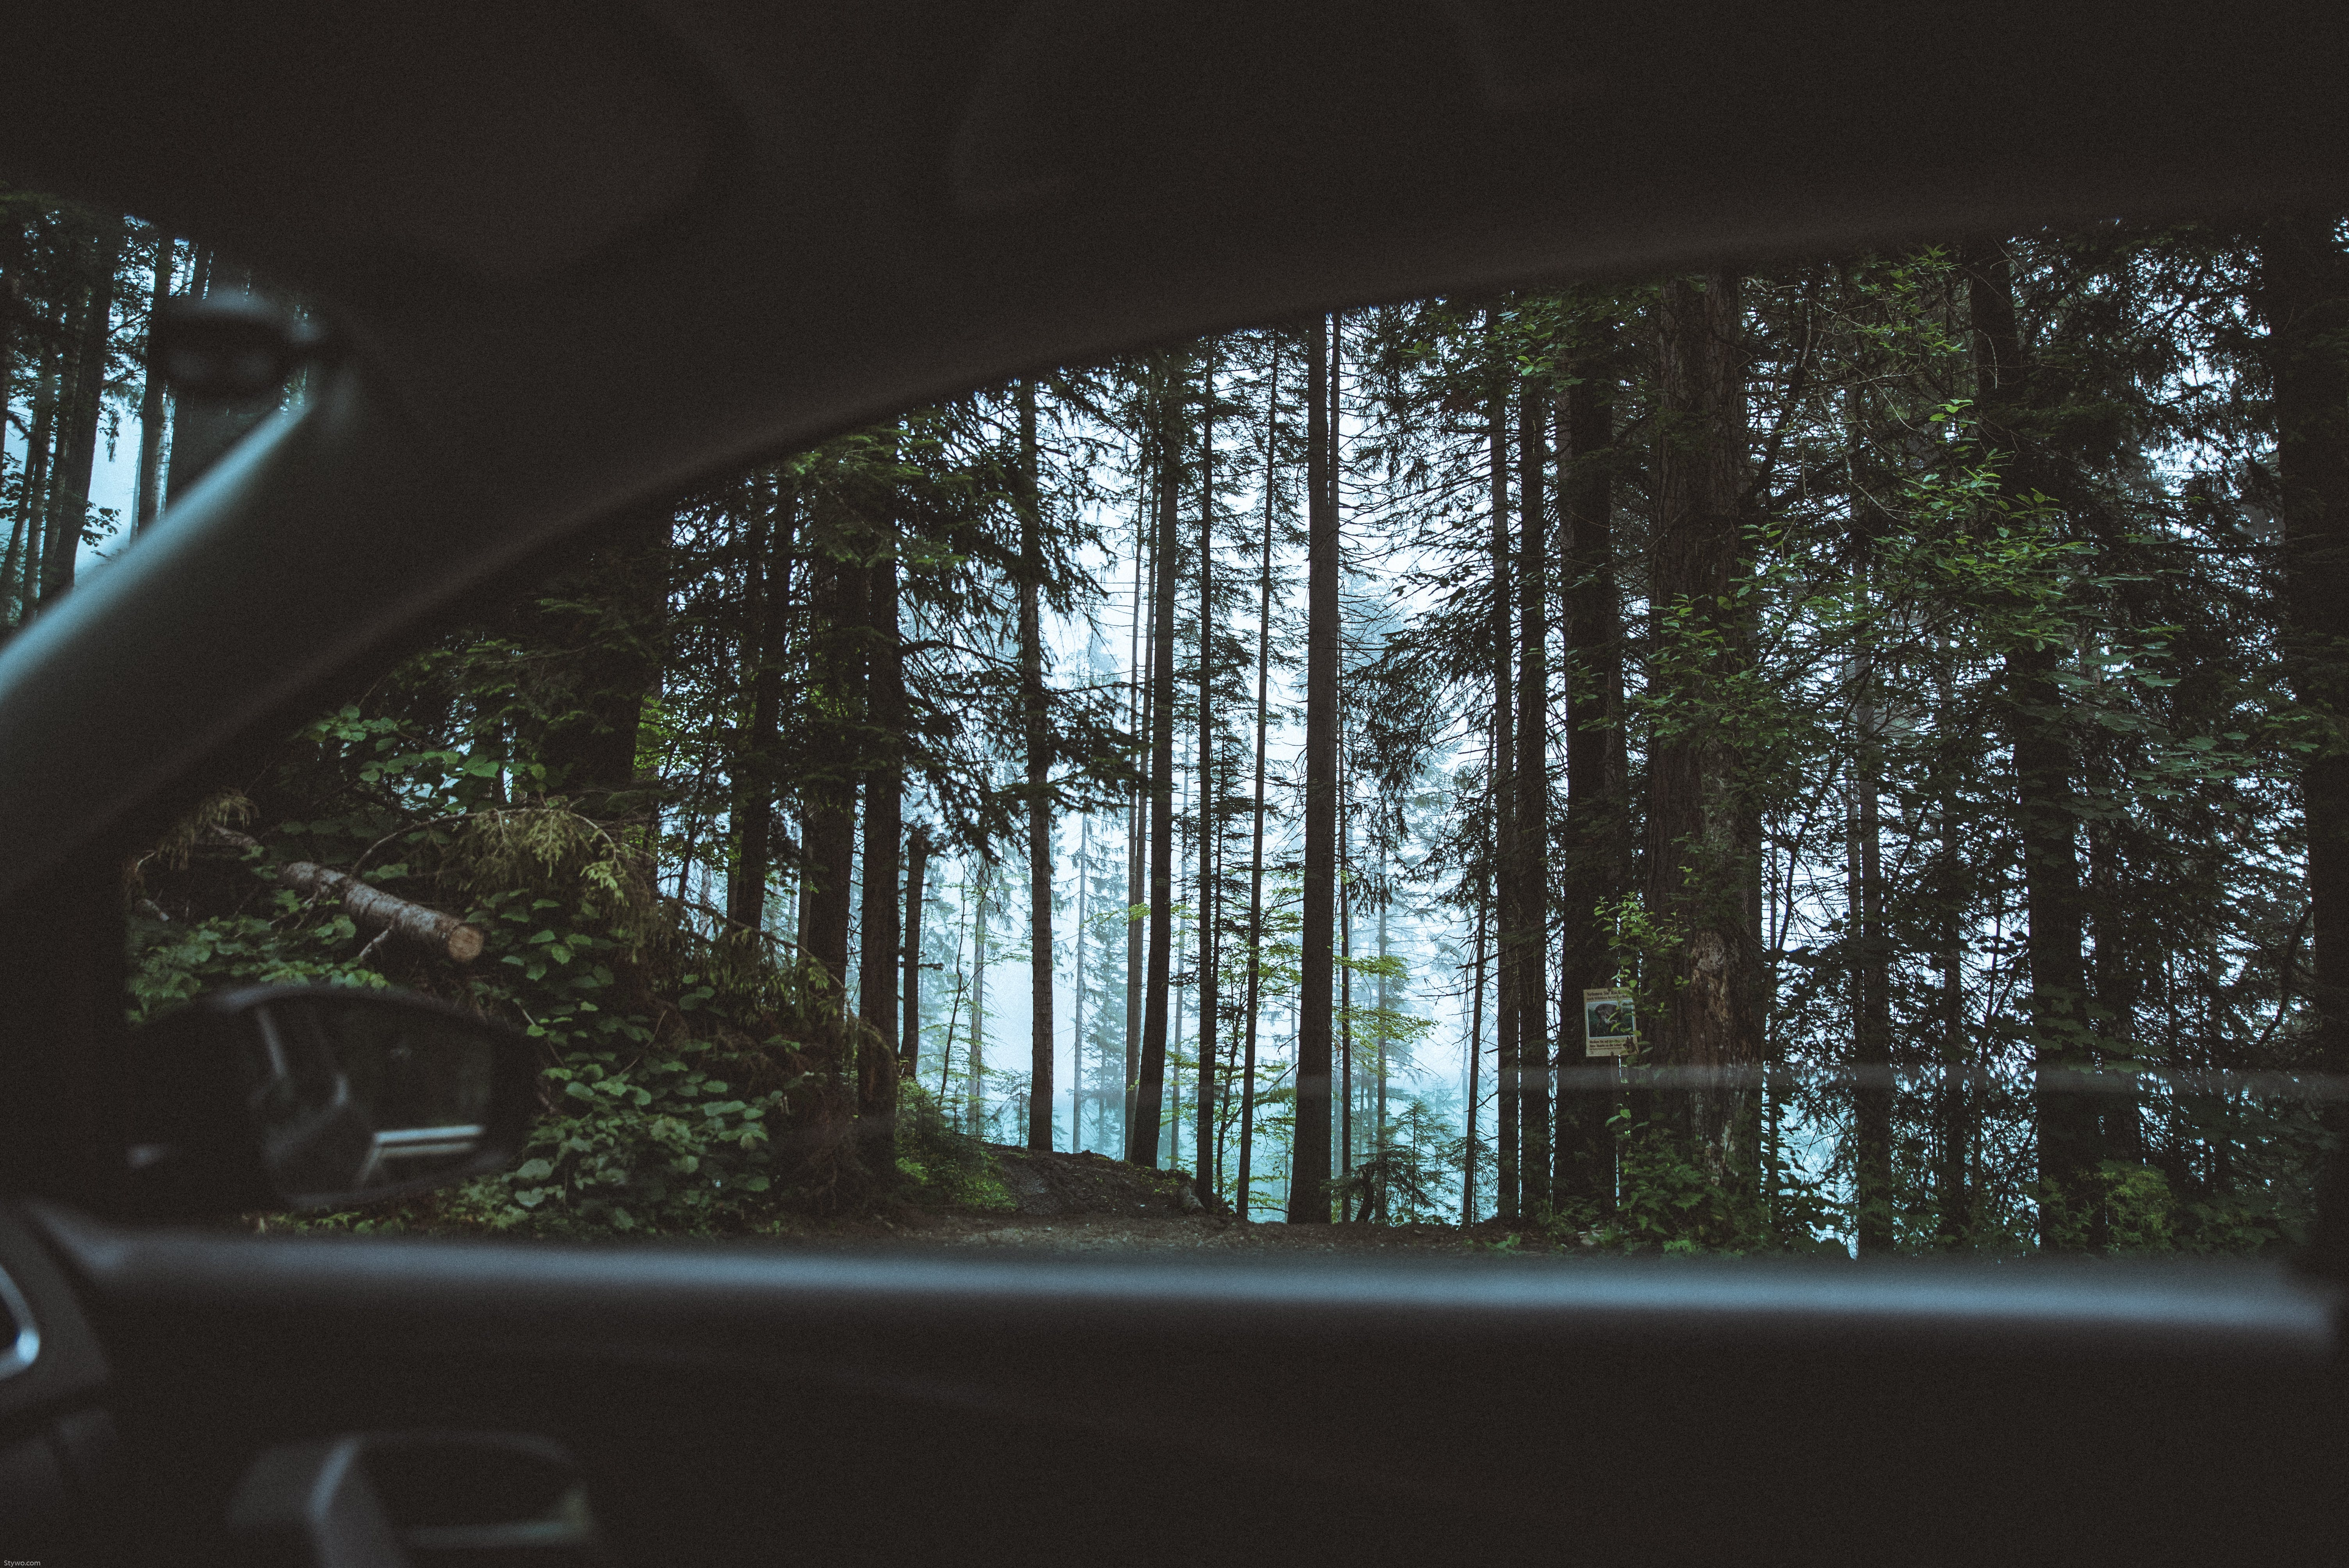 Scenic View of Forest From Car